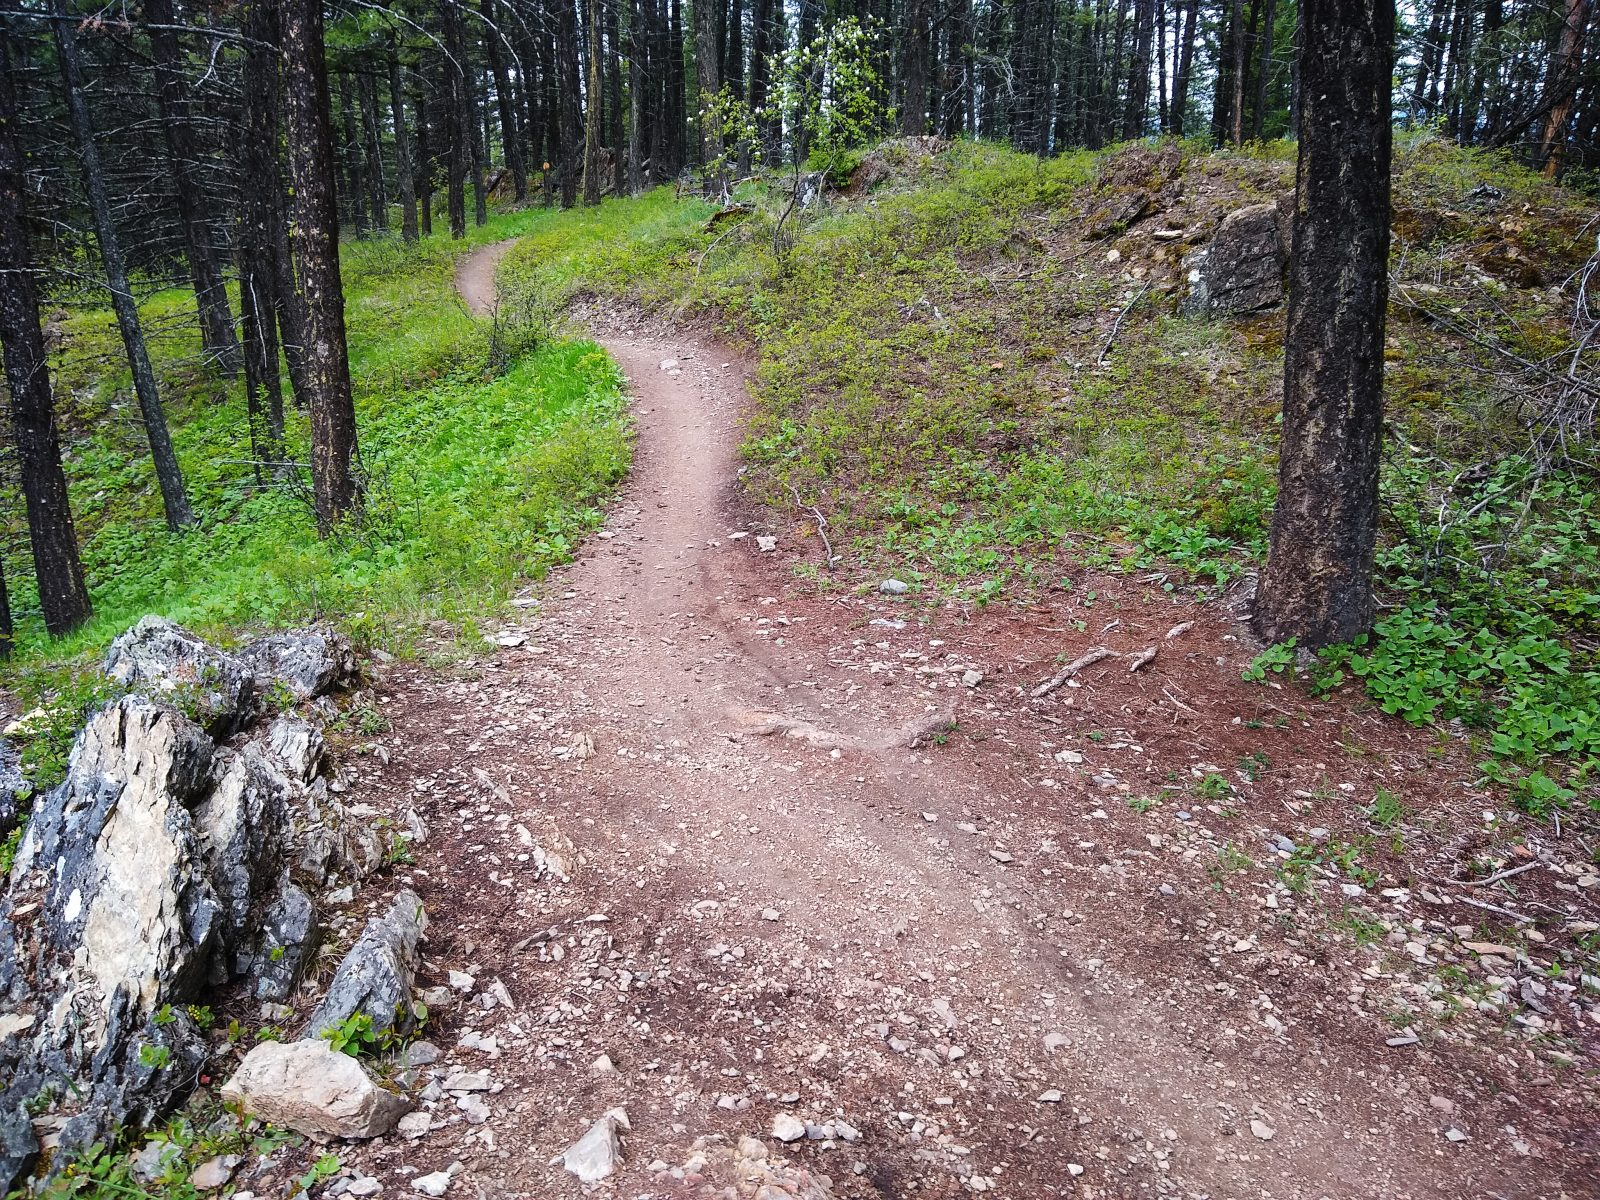 Whitefish Trail - May 16, 2020